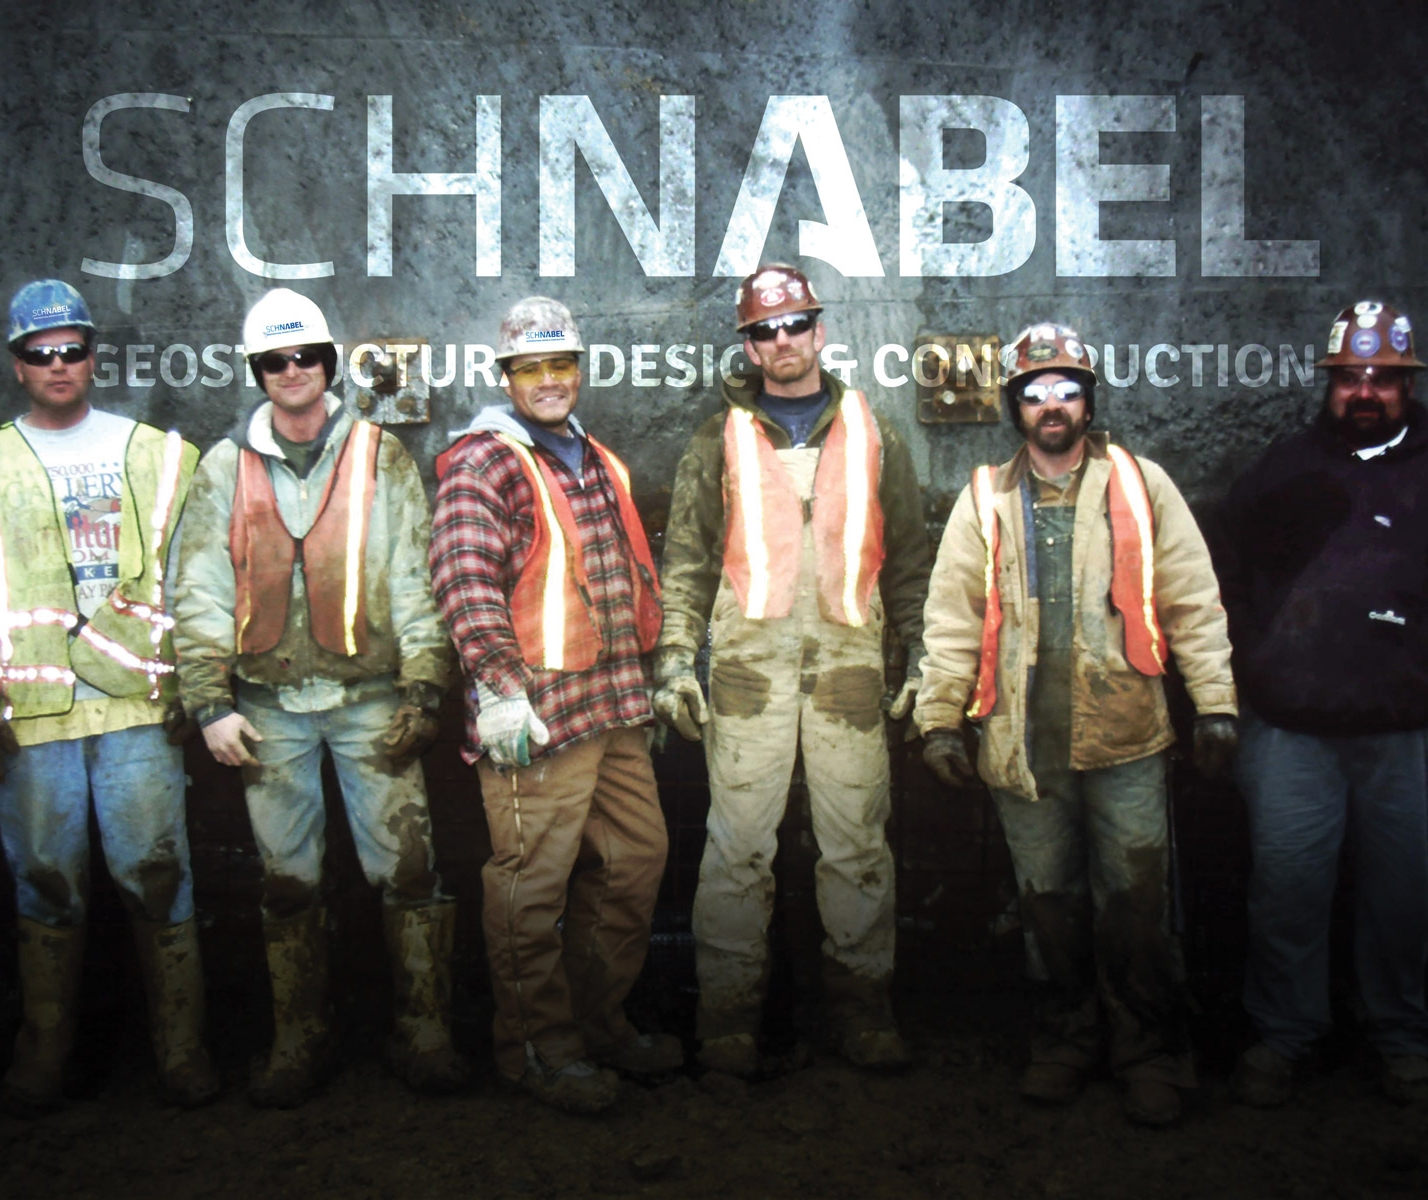 Schnabel Construction Company